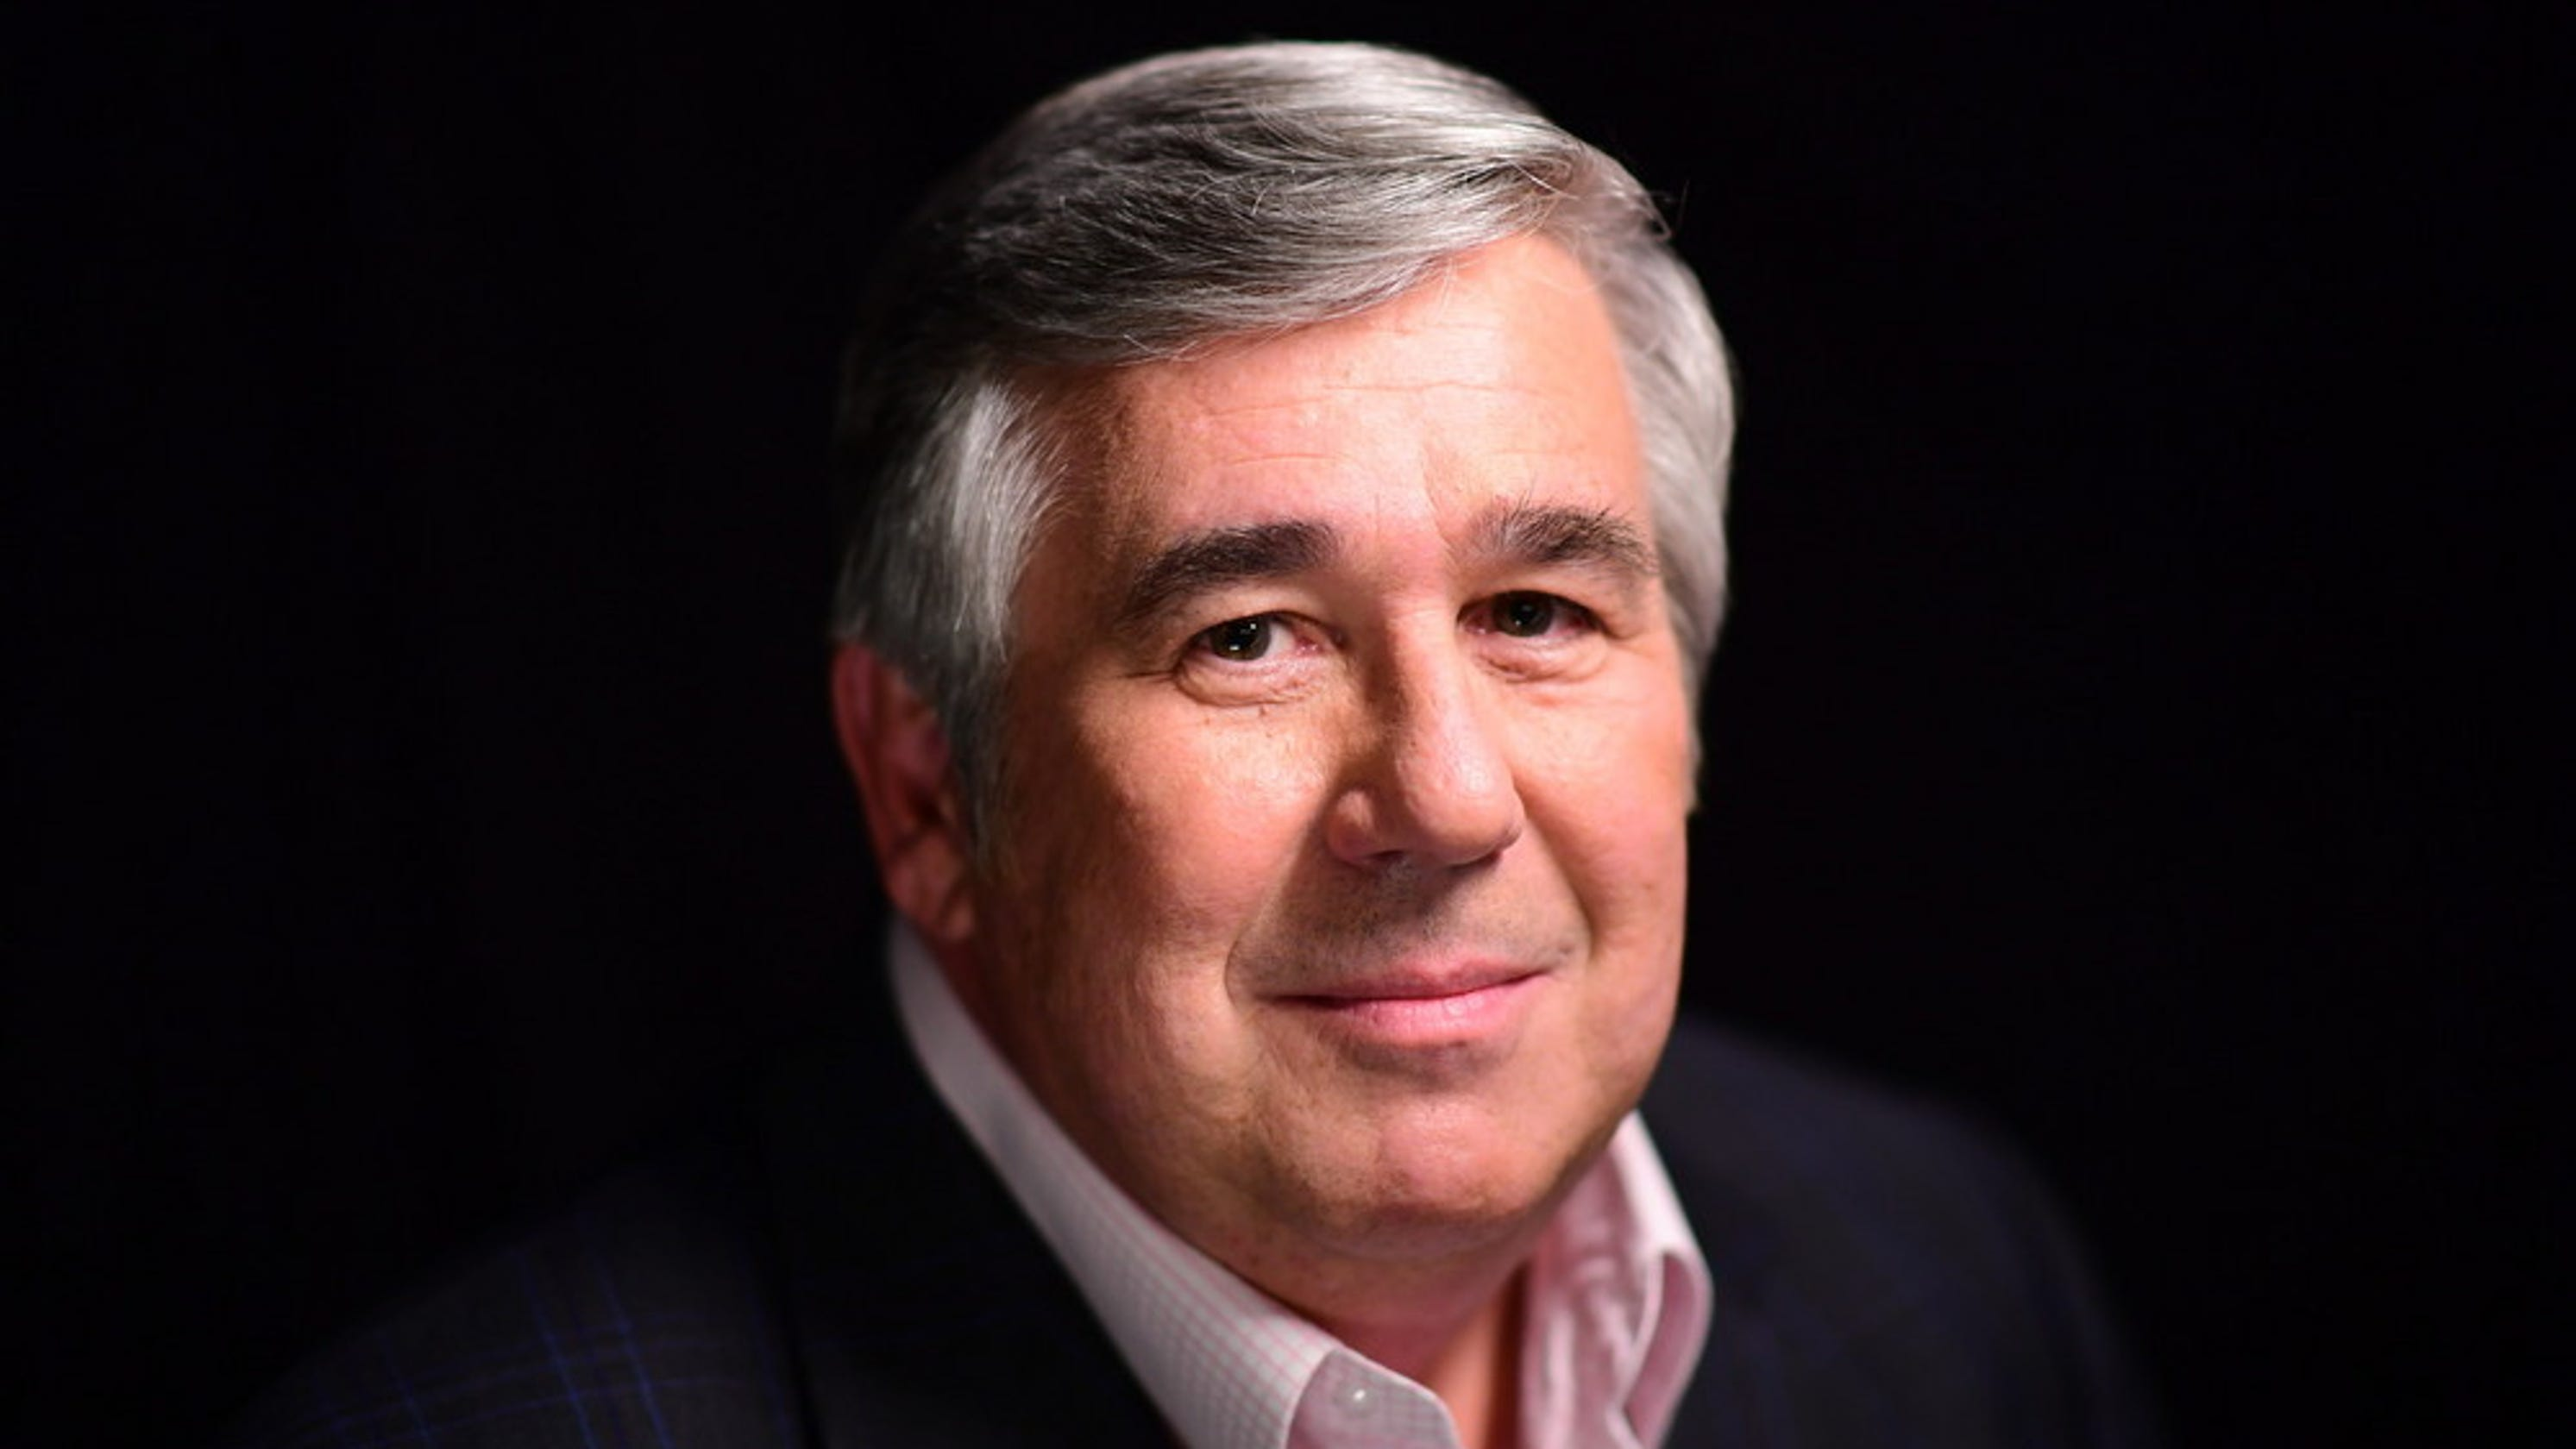 ESPN: 'Outside The Lines' Host Bob Ley Extends His Leave